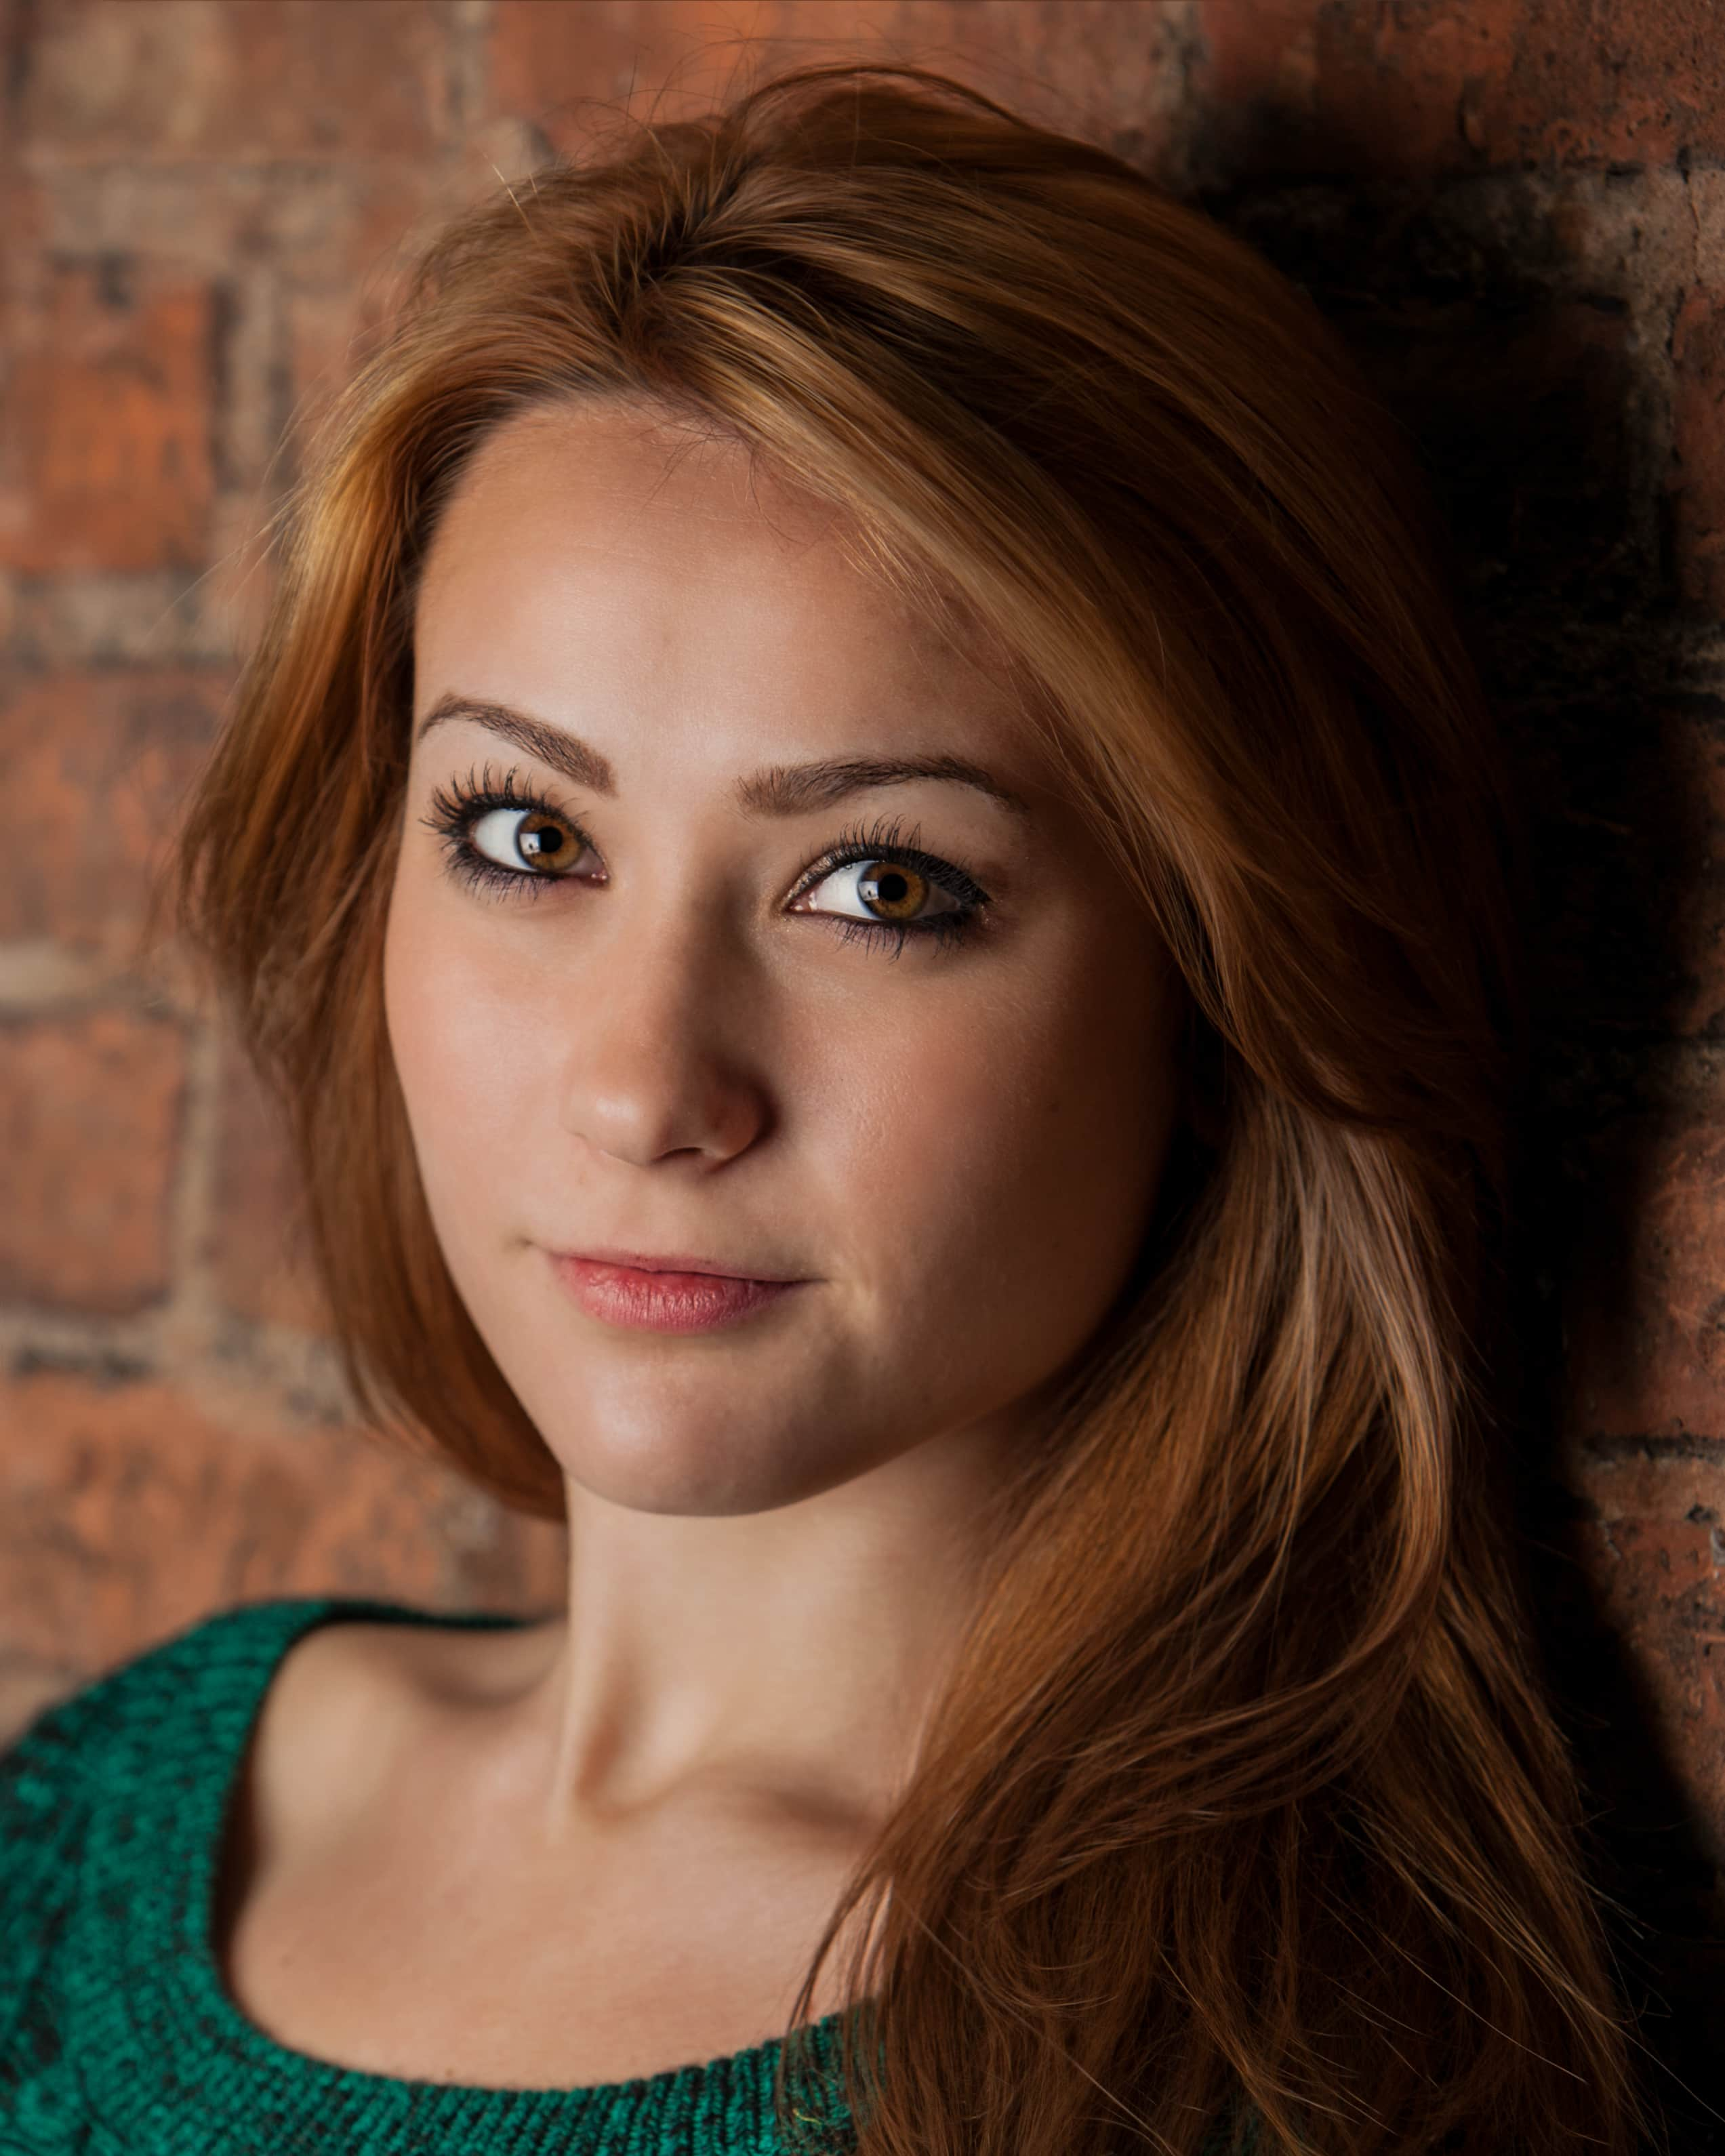 A headshot for a young actress.